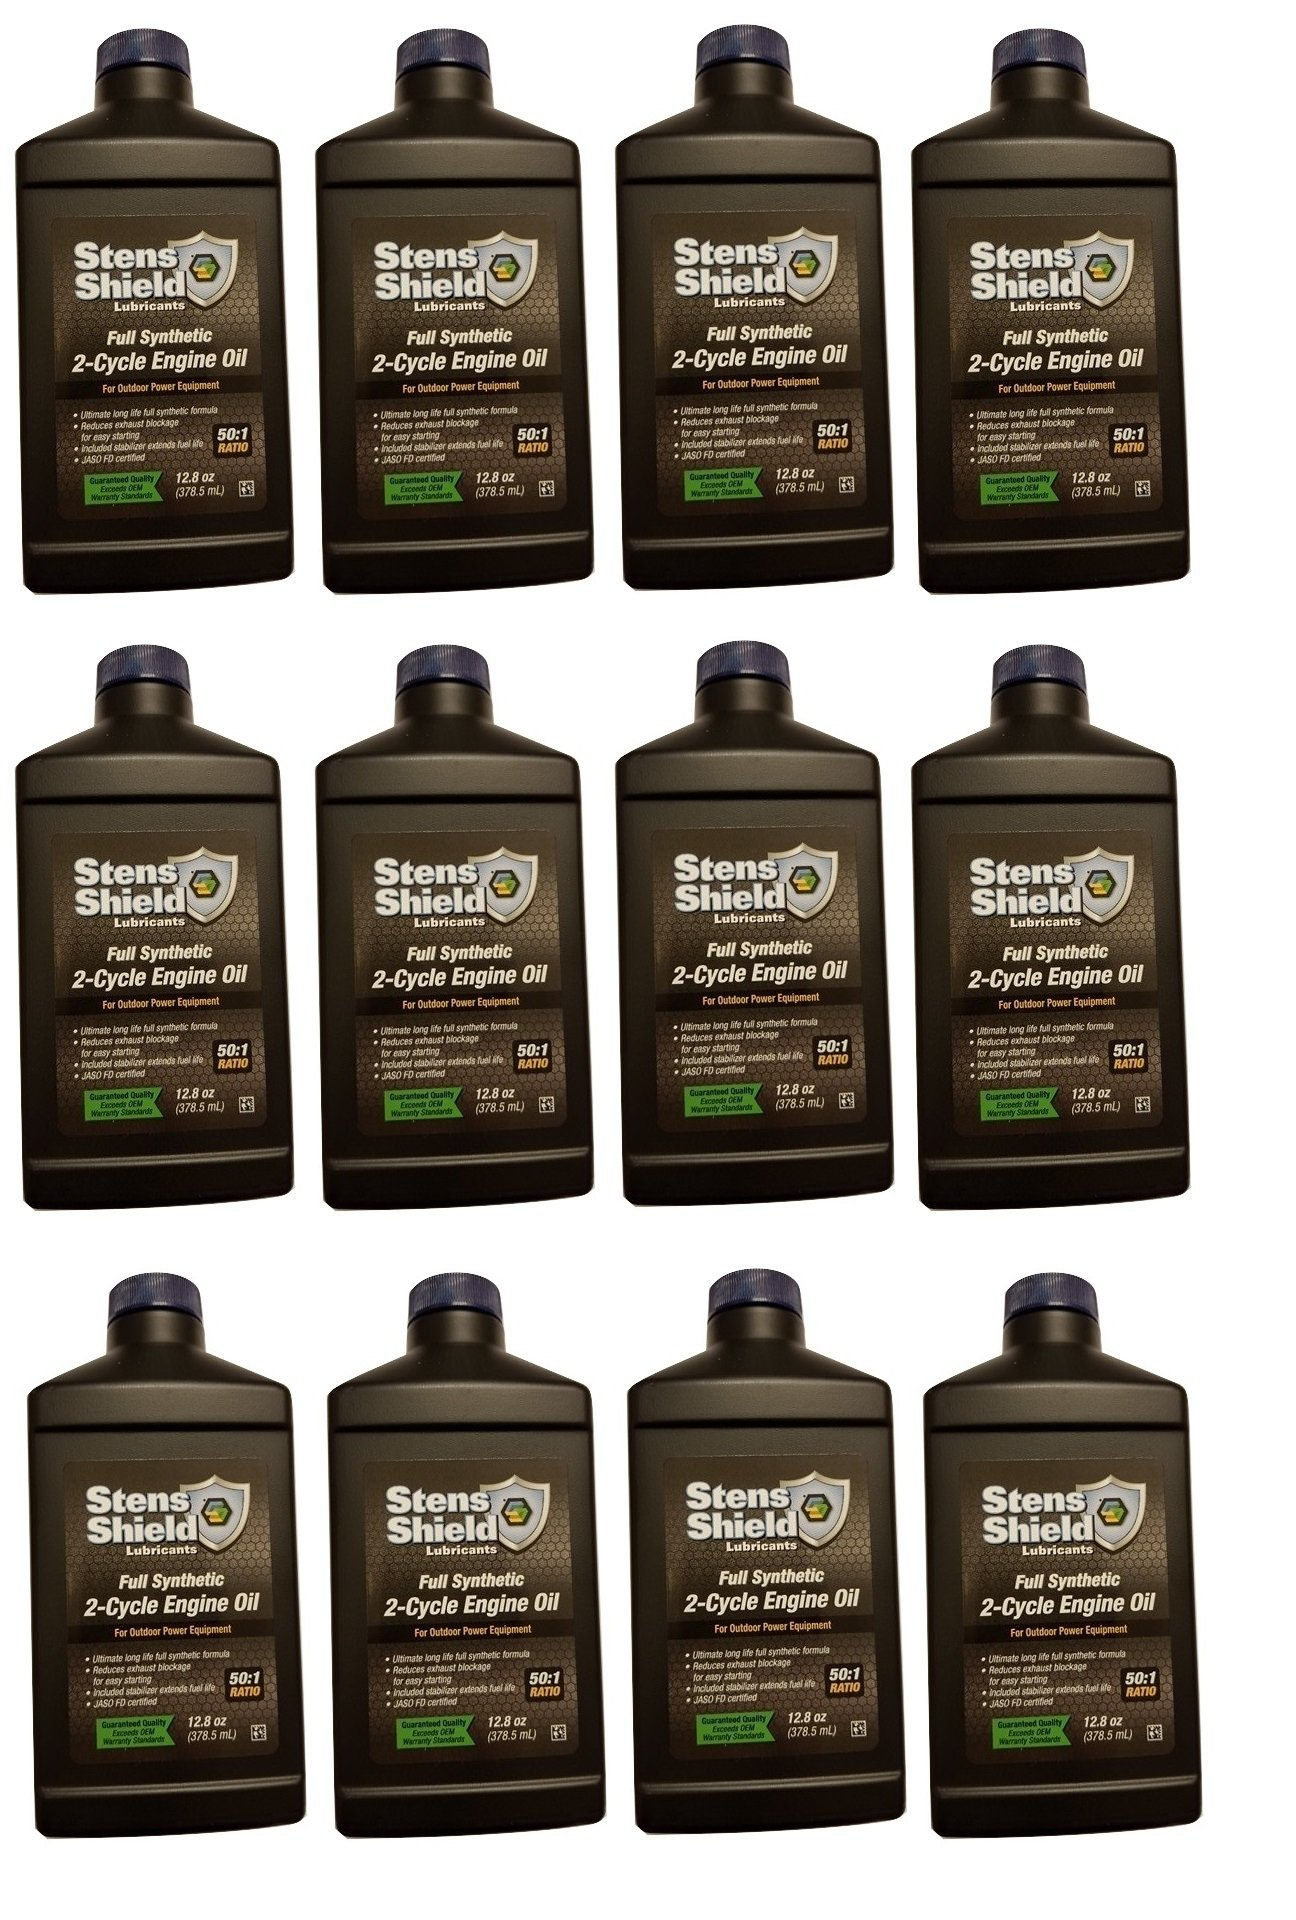 Stens 770 128 50:1 Full Synthetic 2-Cycle Engine Oil Mix 12.8 fl oz (12 Pack)